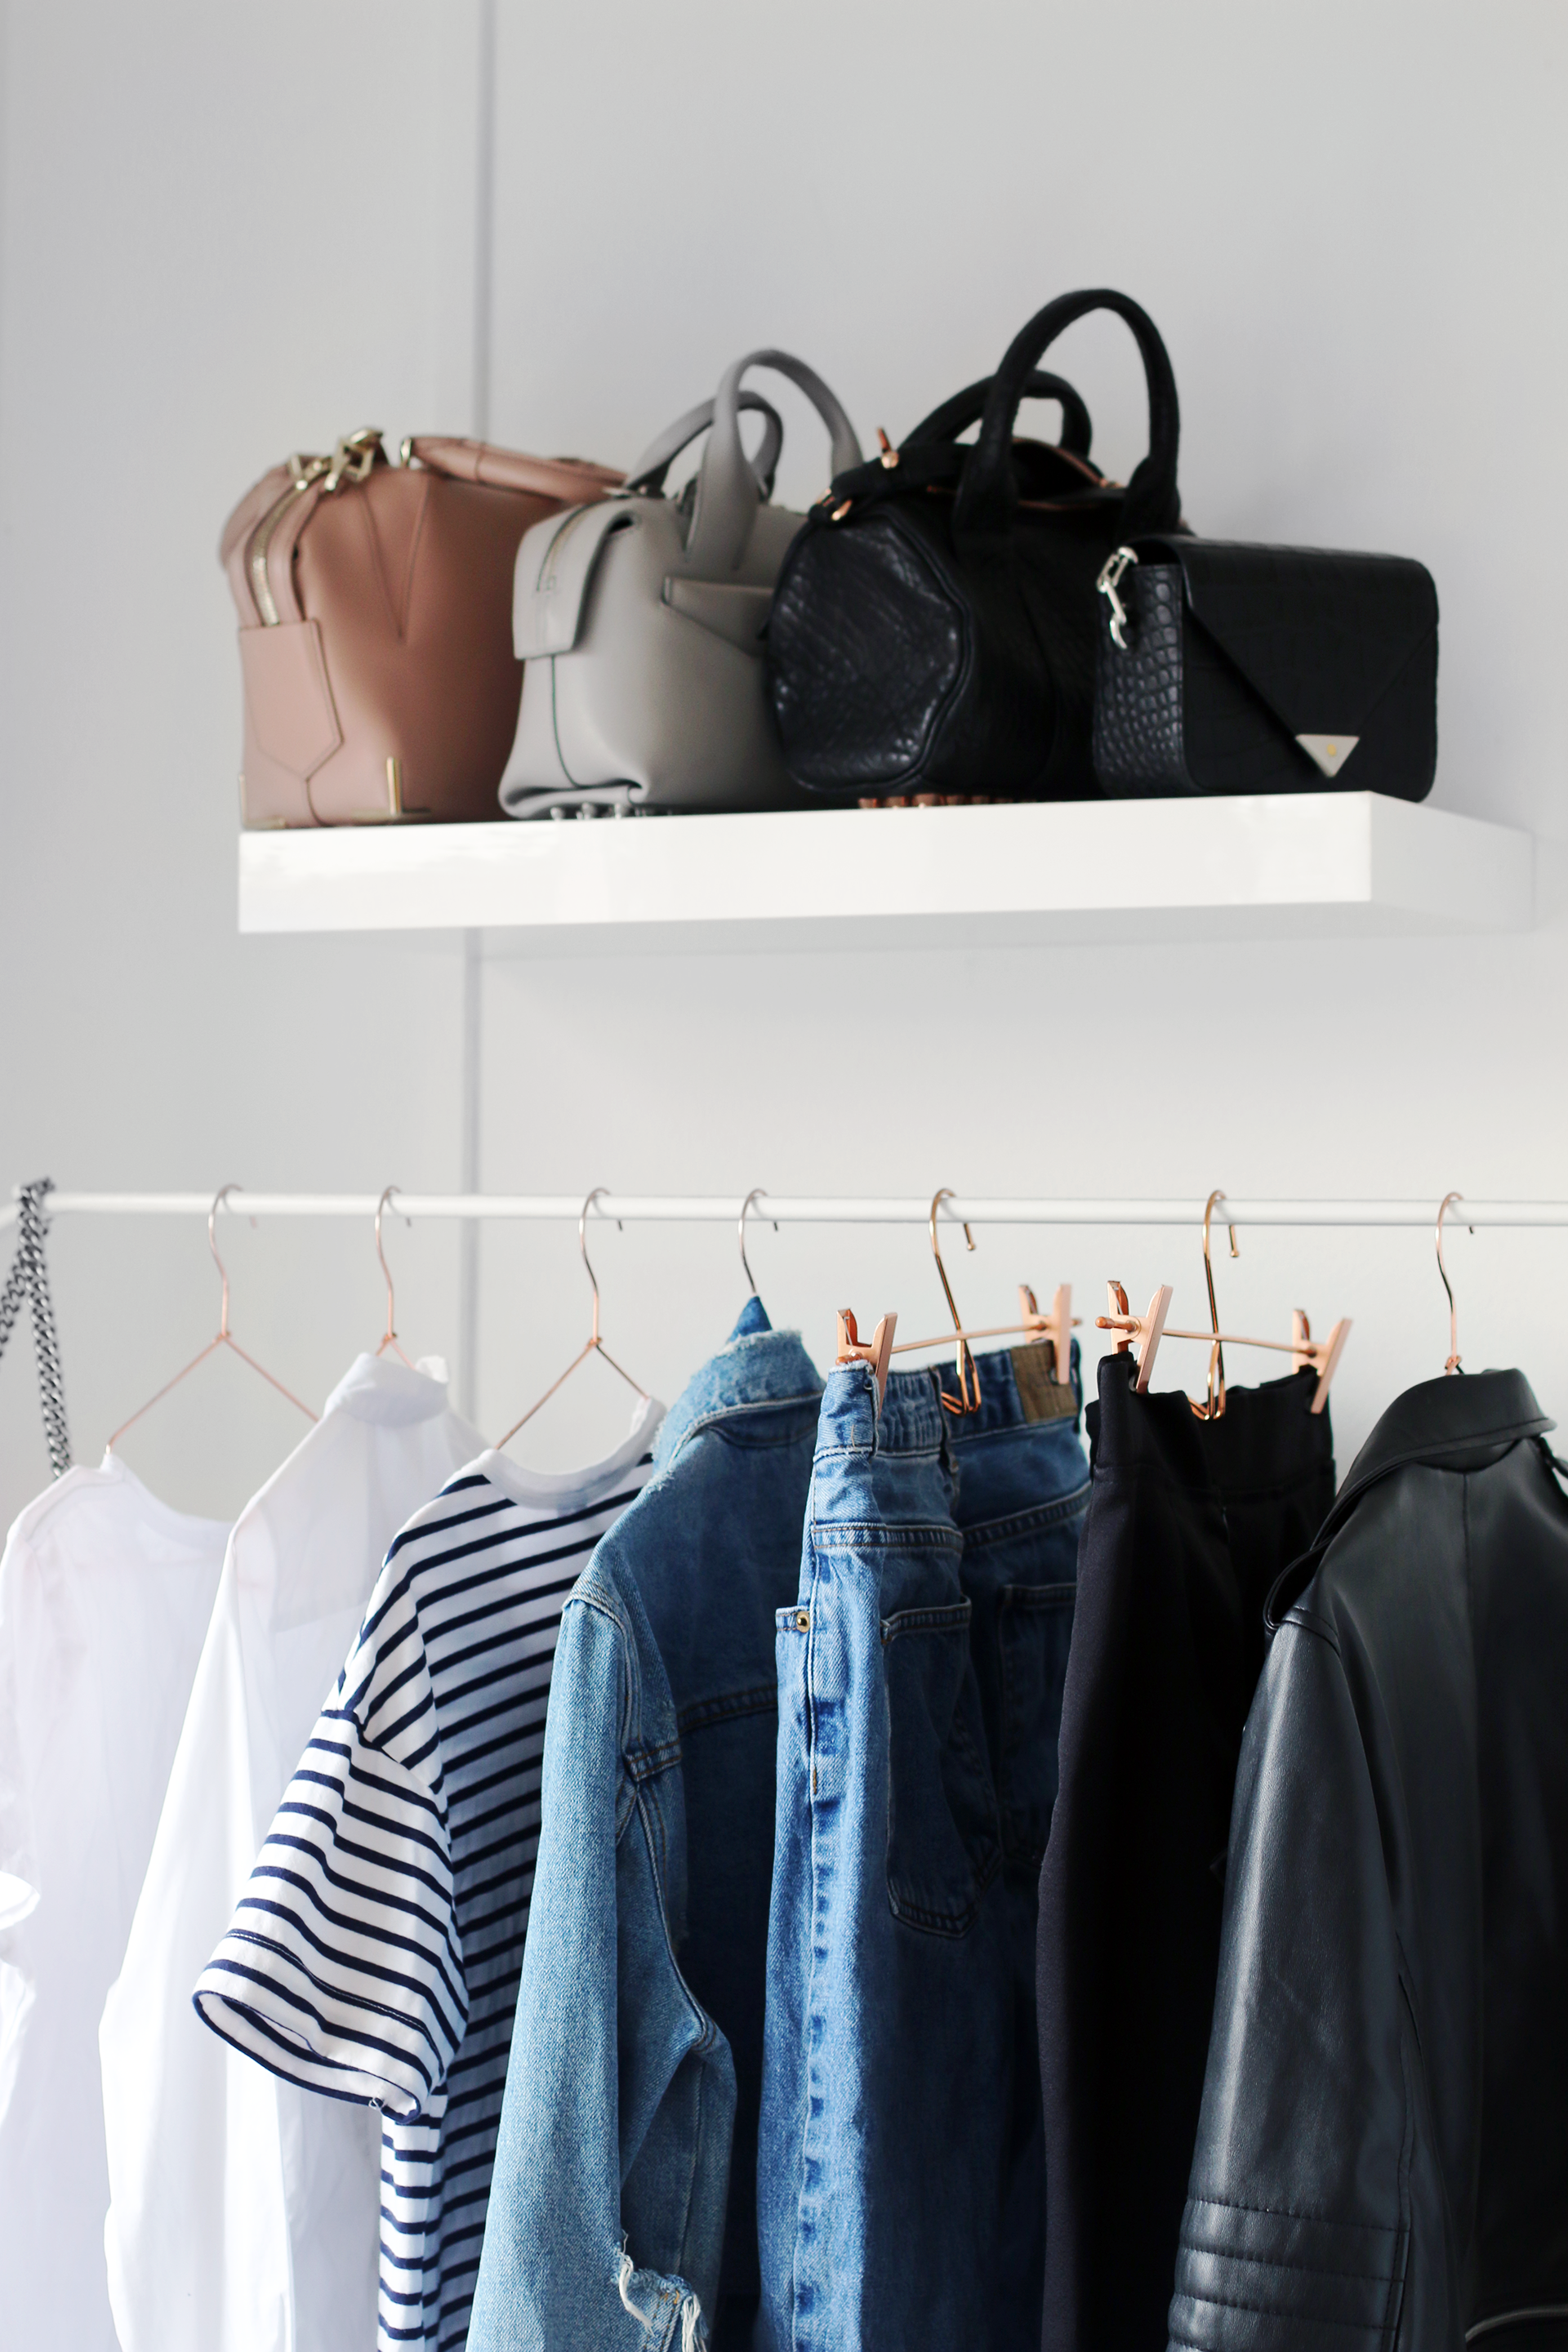 How To Build Your Capsule Wardrobe with Basics